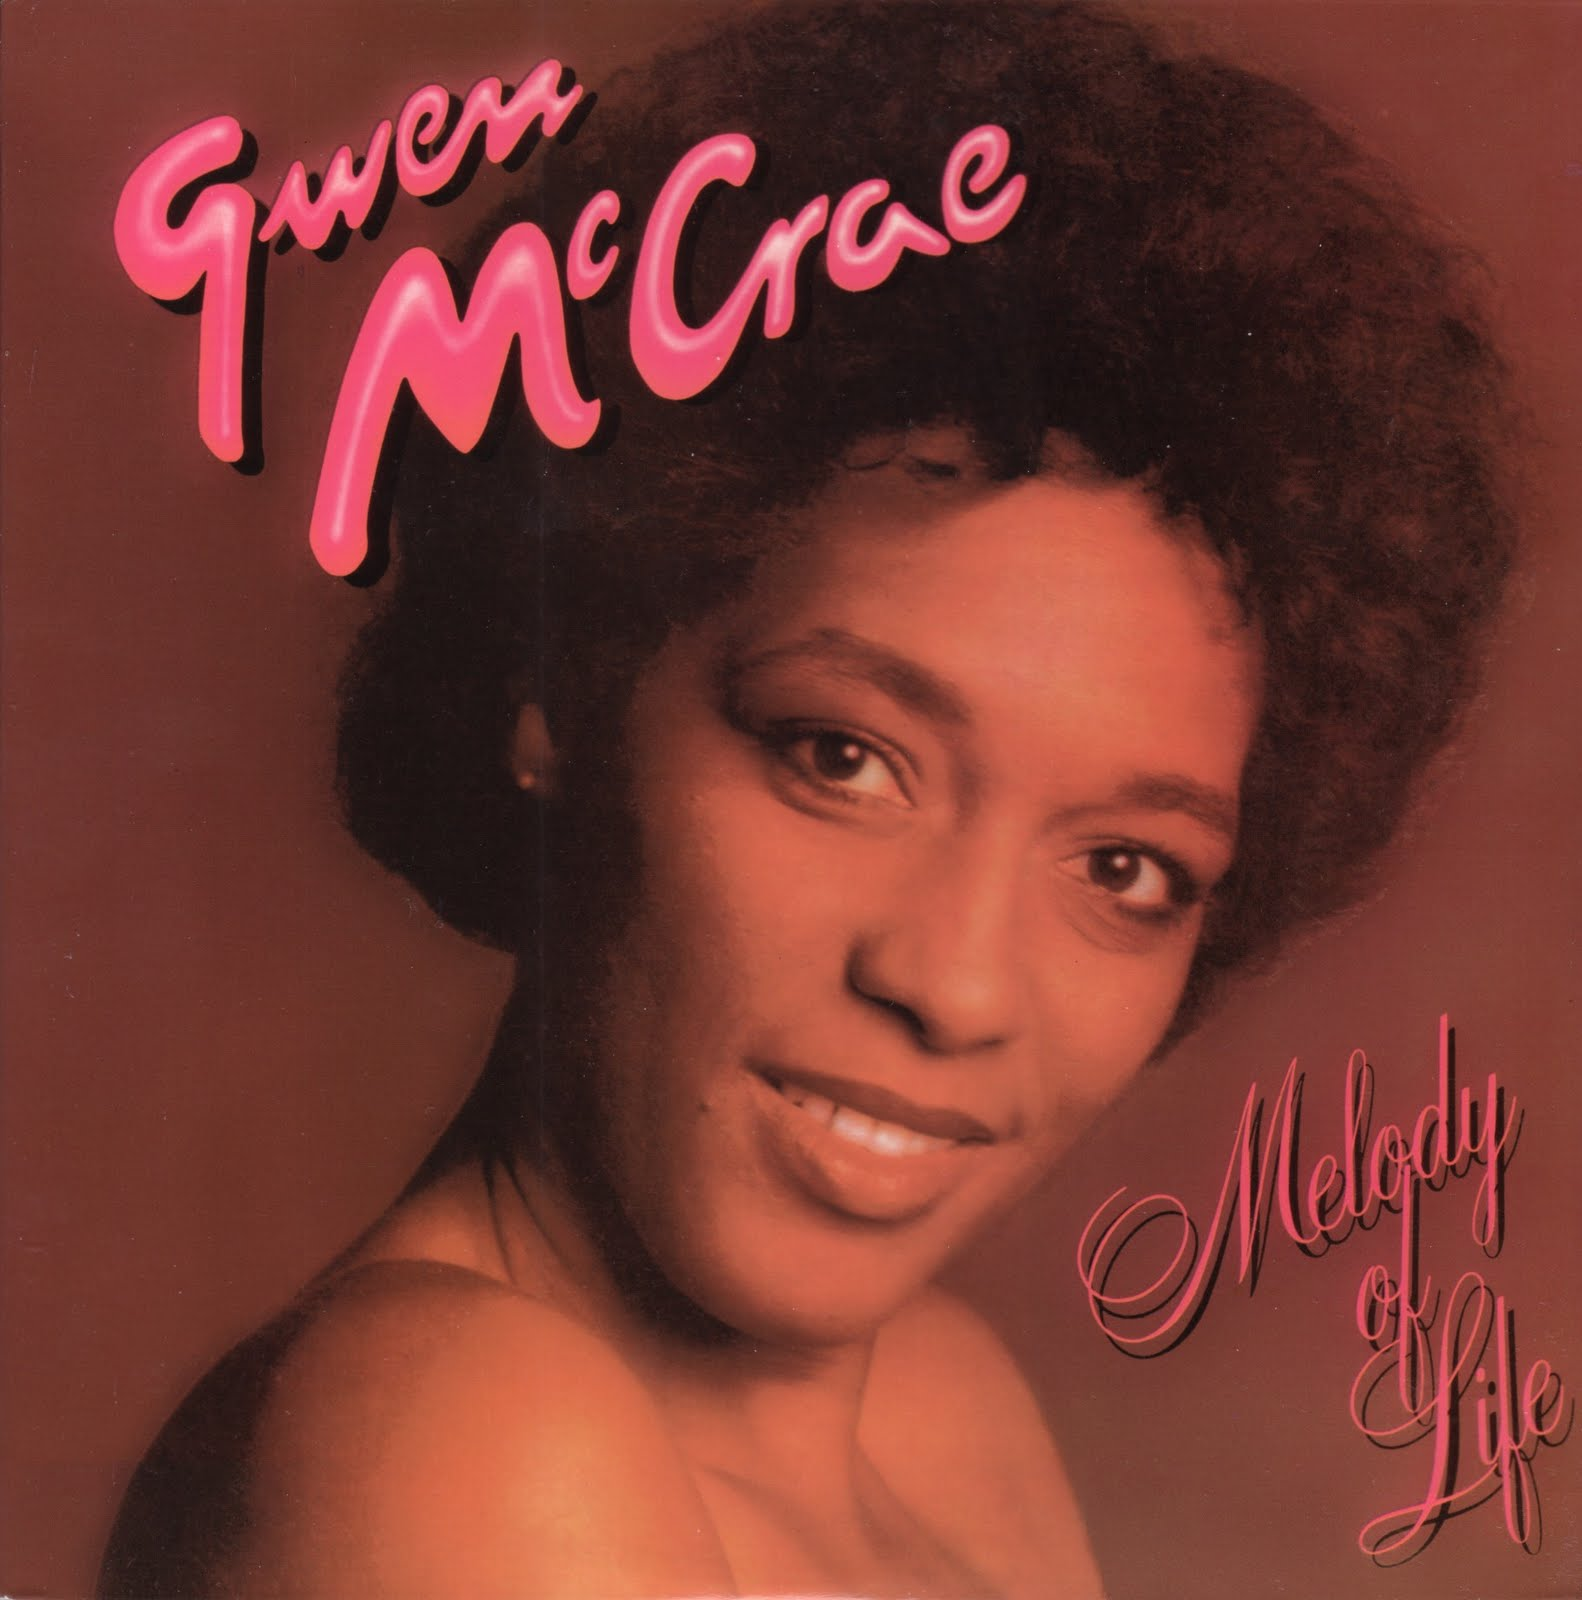 gwen-mccrae-melody-of-life-front